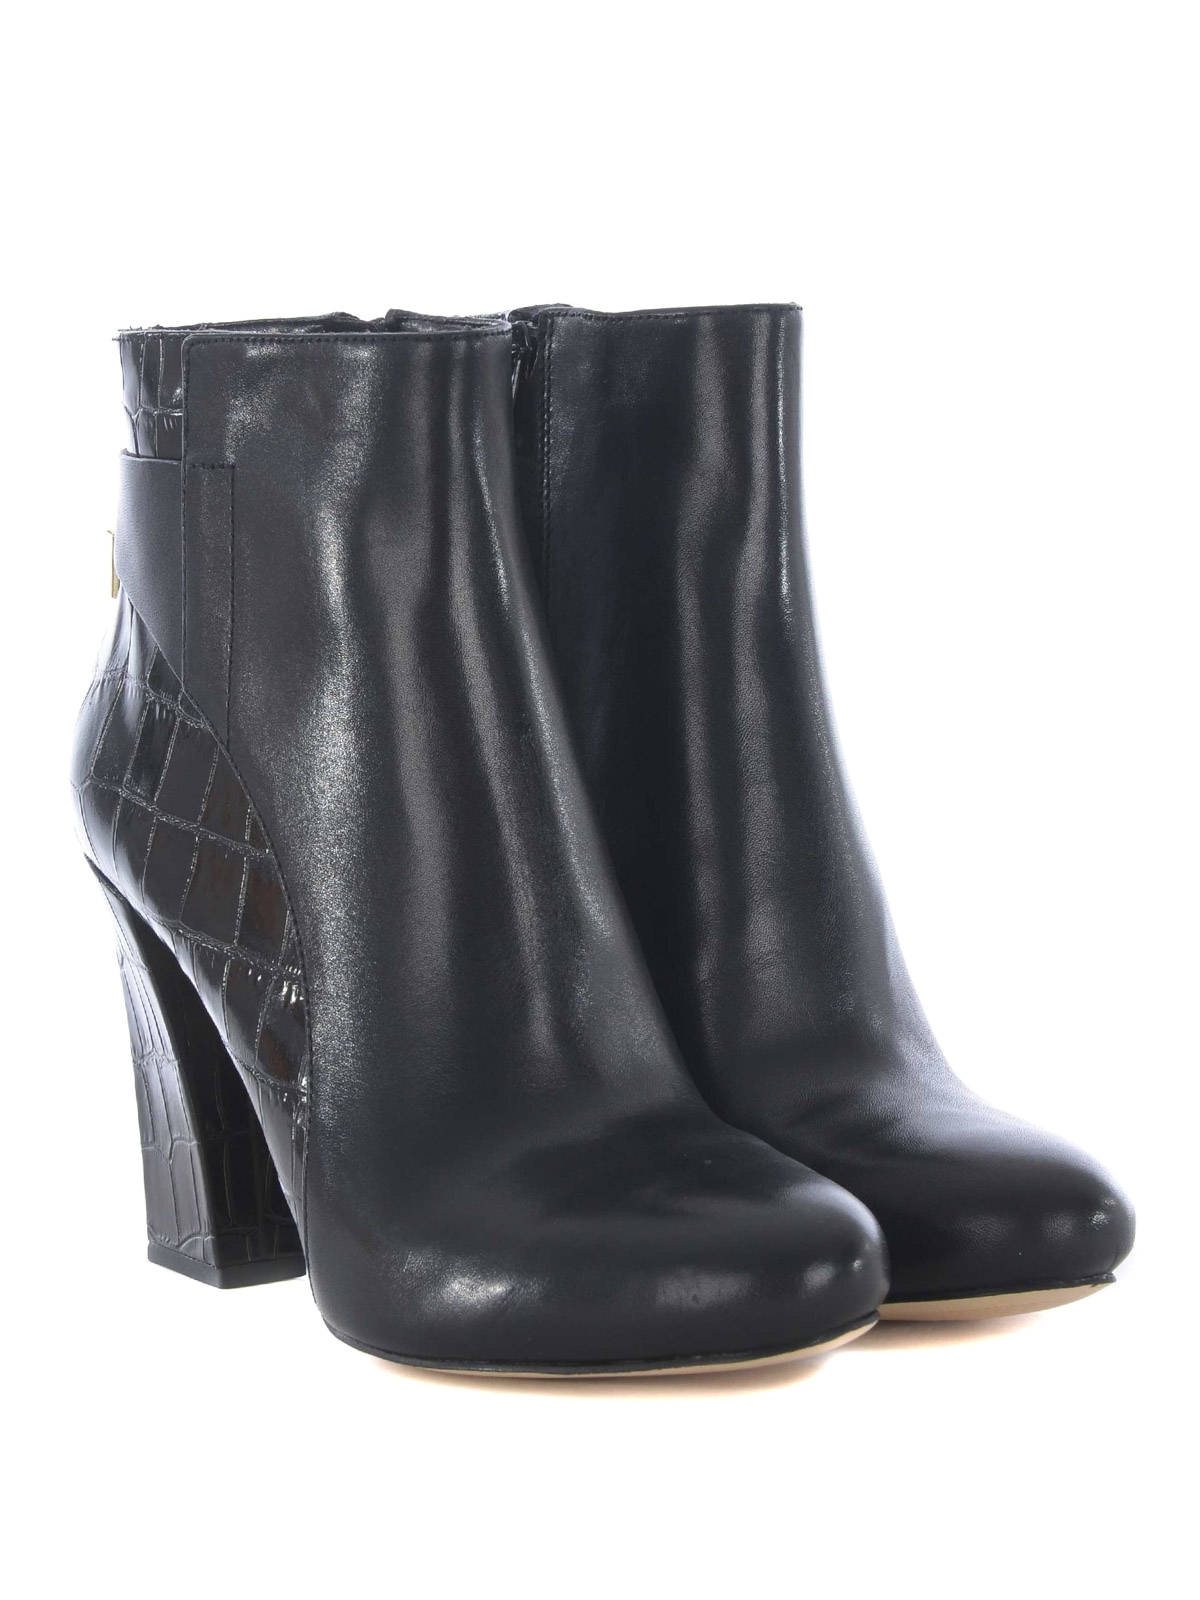 Mira Black Leather Booties By Michael Kors Ankle Boots